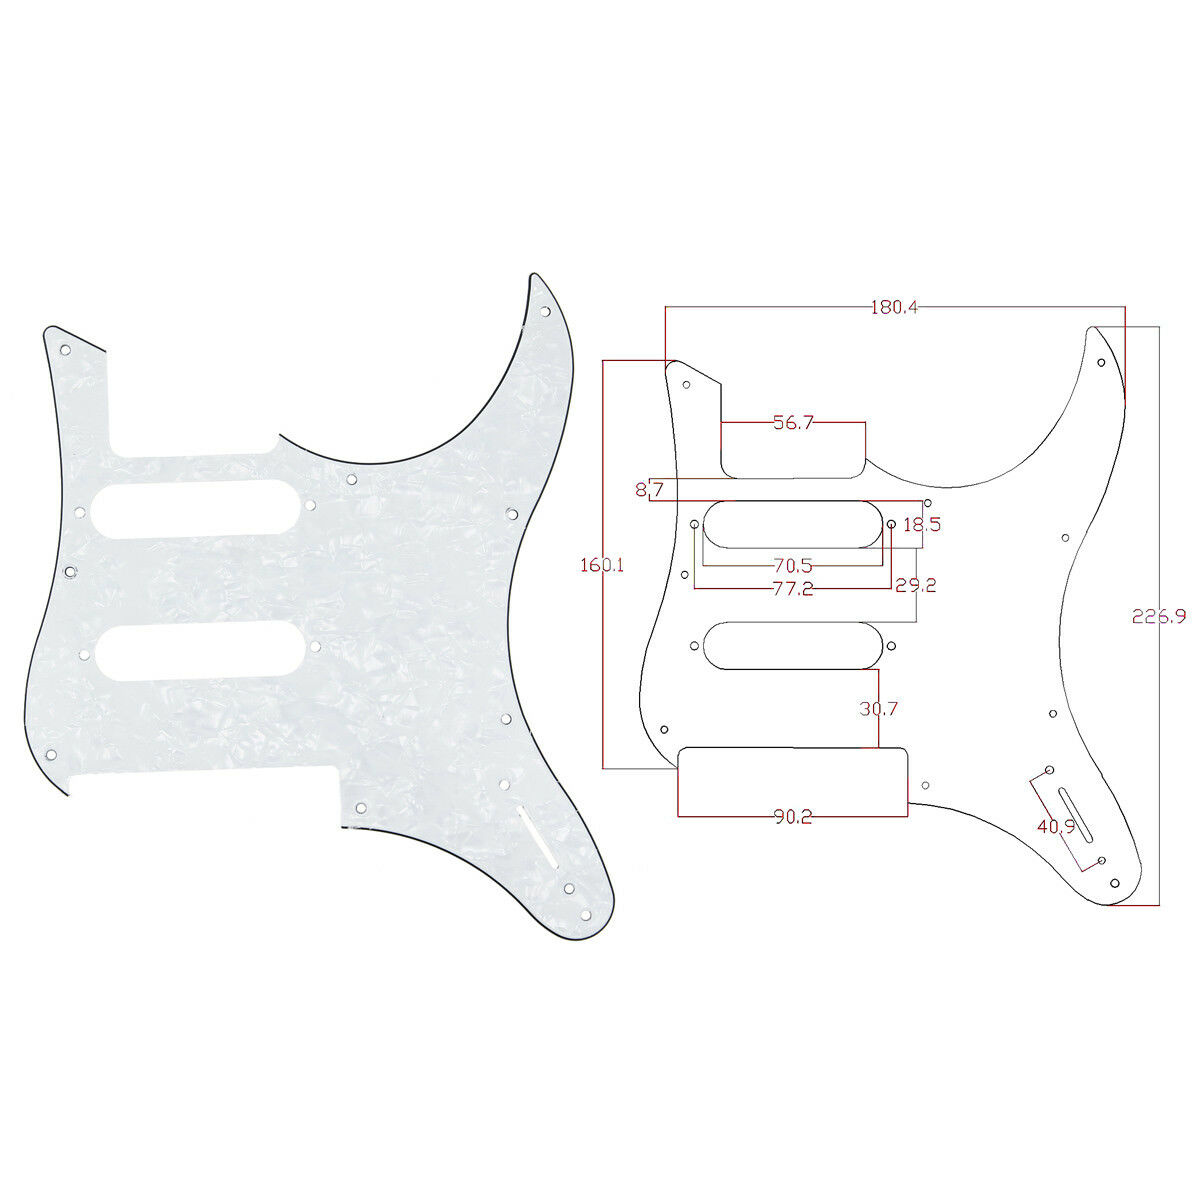 white pearl guitar pickguard for yamaha pacifica 112v replacement parts 3 ply 634458588225 ebay. Black Bedroom Furniture Sets. Home Design Ideas